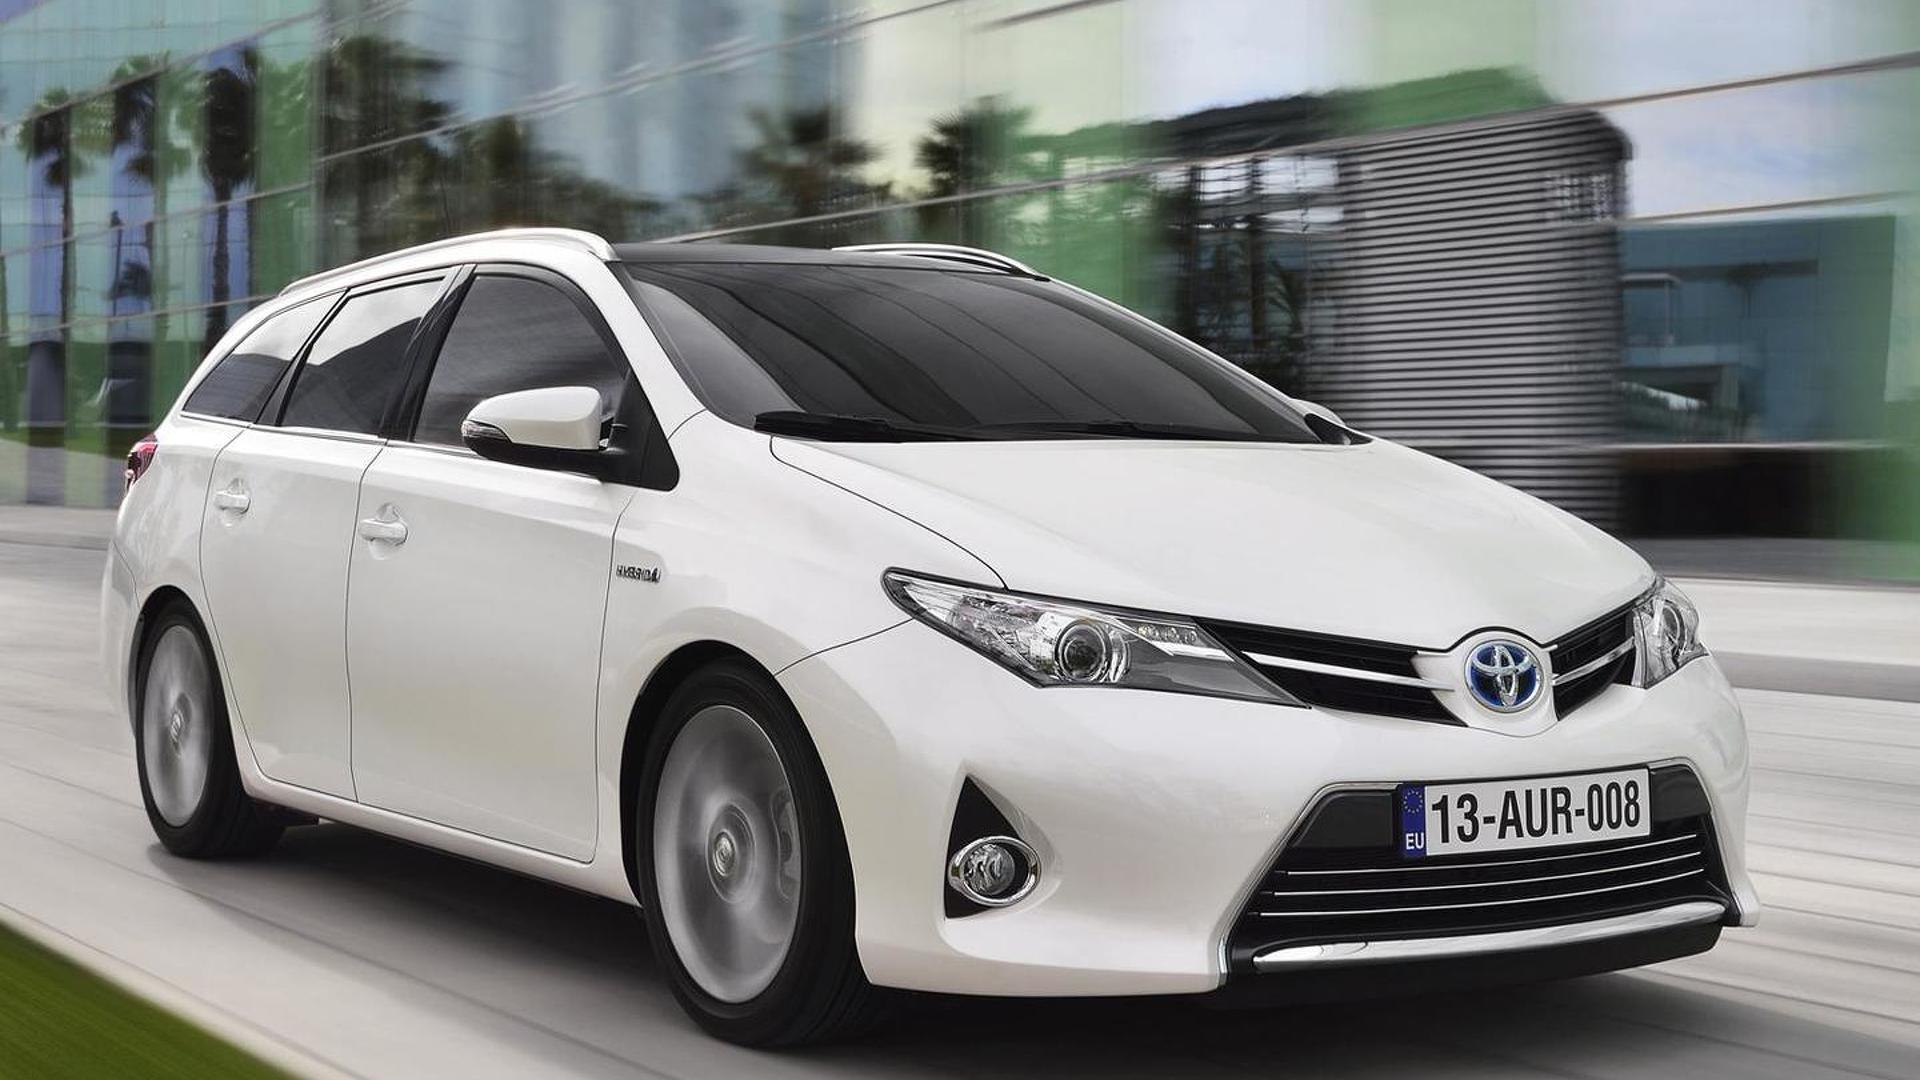 2013 Toyota Auris Touring Sports detailed